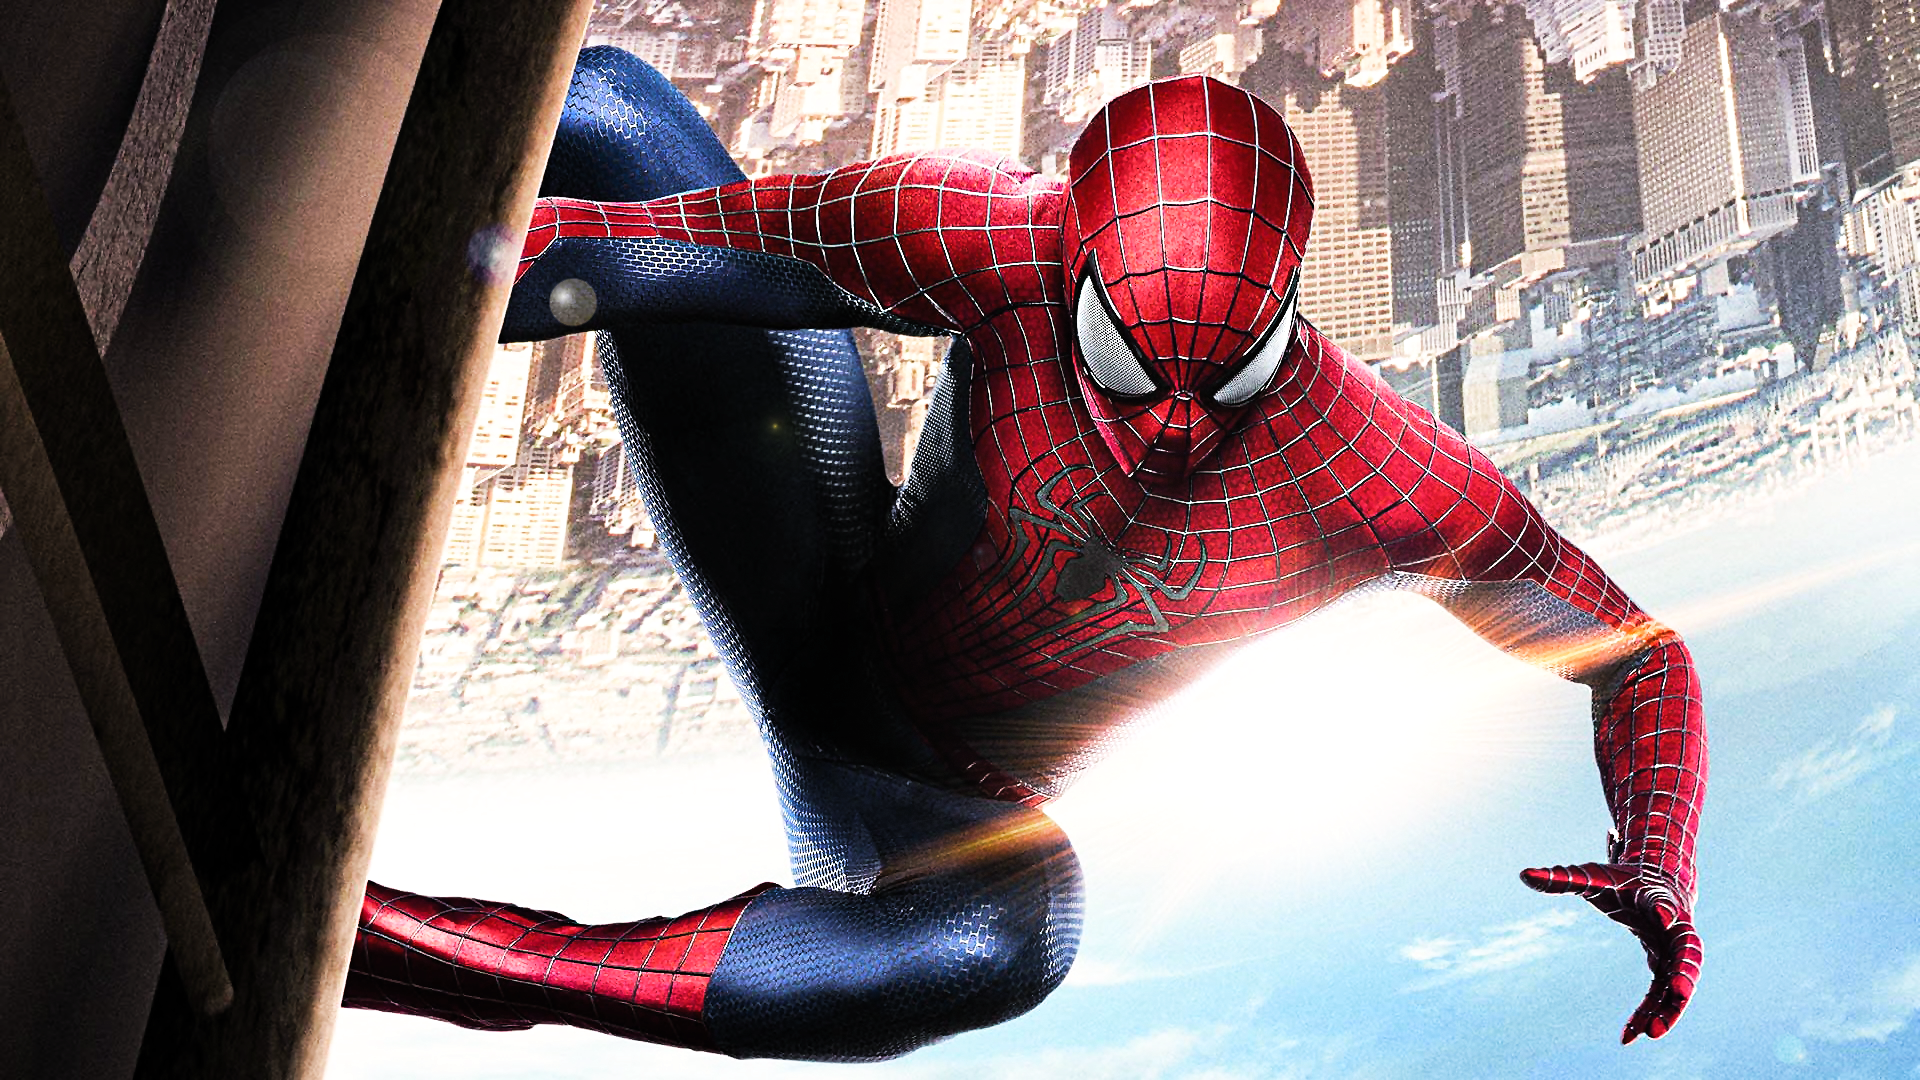 The Amazing Spider-Man 2 Movie Poster Wallpaper 4 by ...